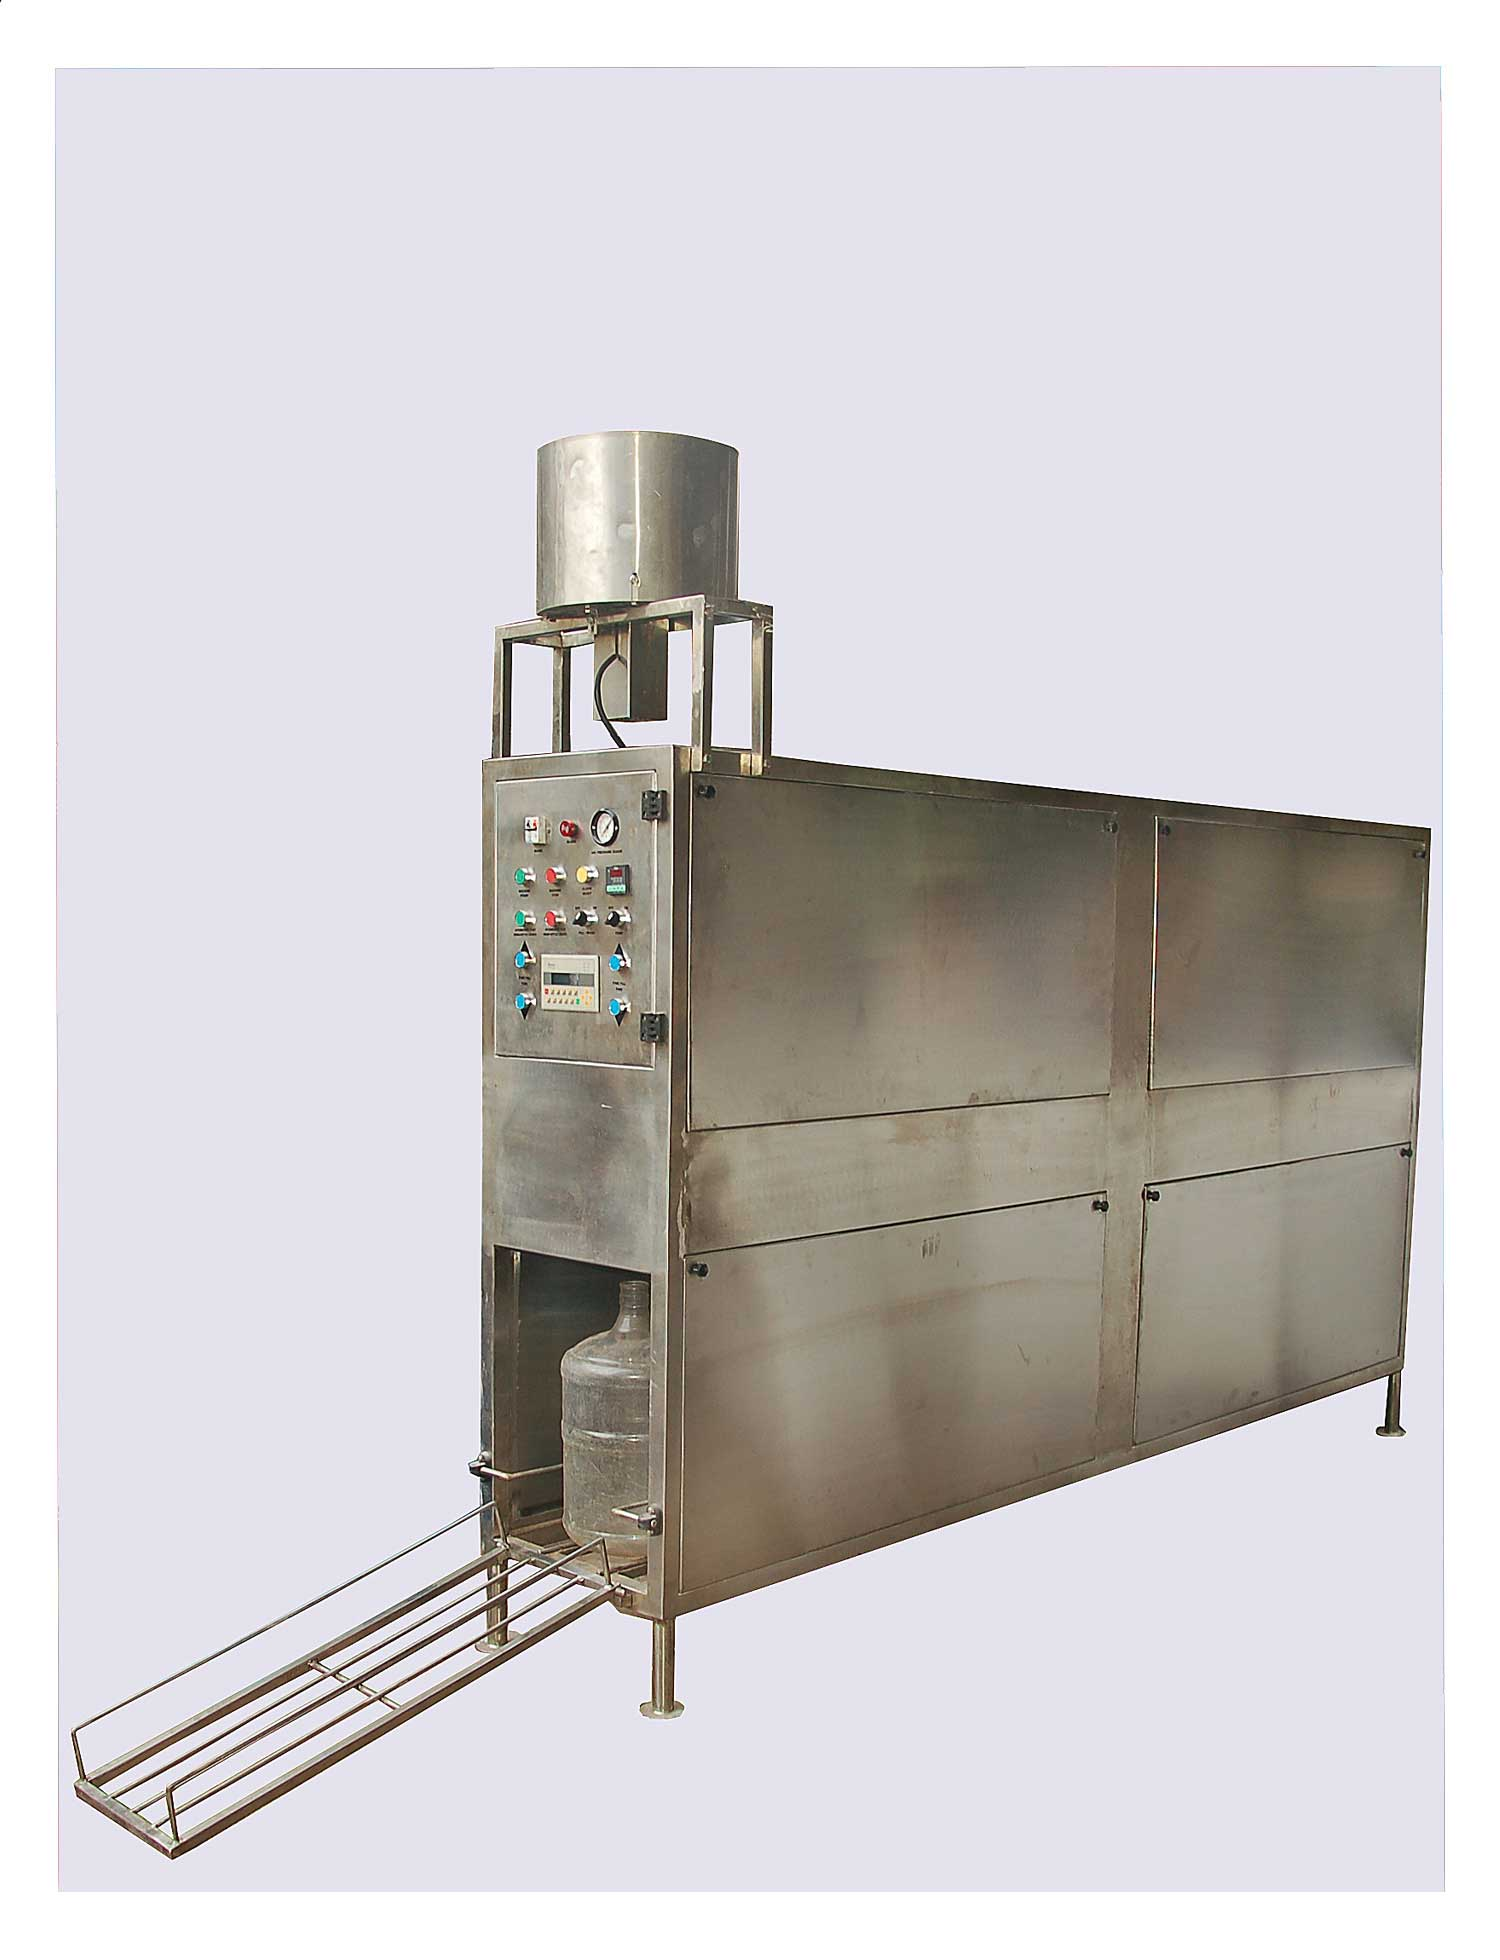 Automatic 20 Liter Jar's Rinsing, Filling And Capping Machine 100-120 JH